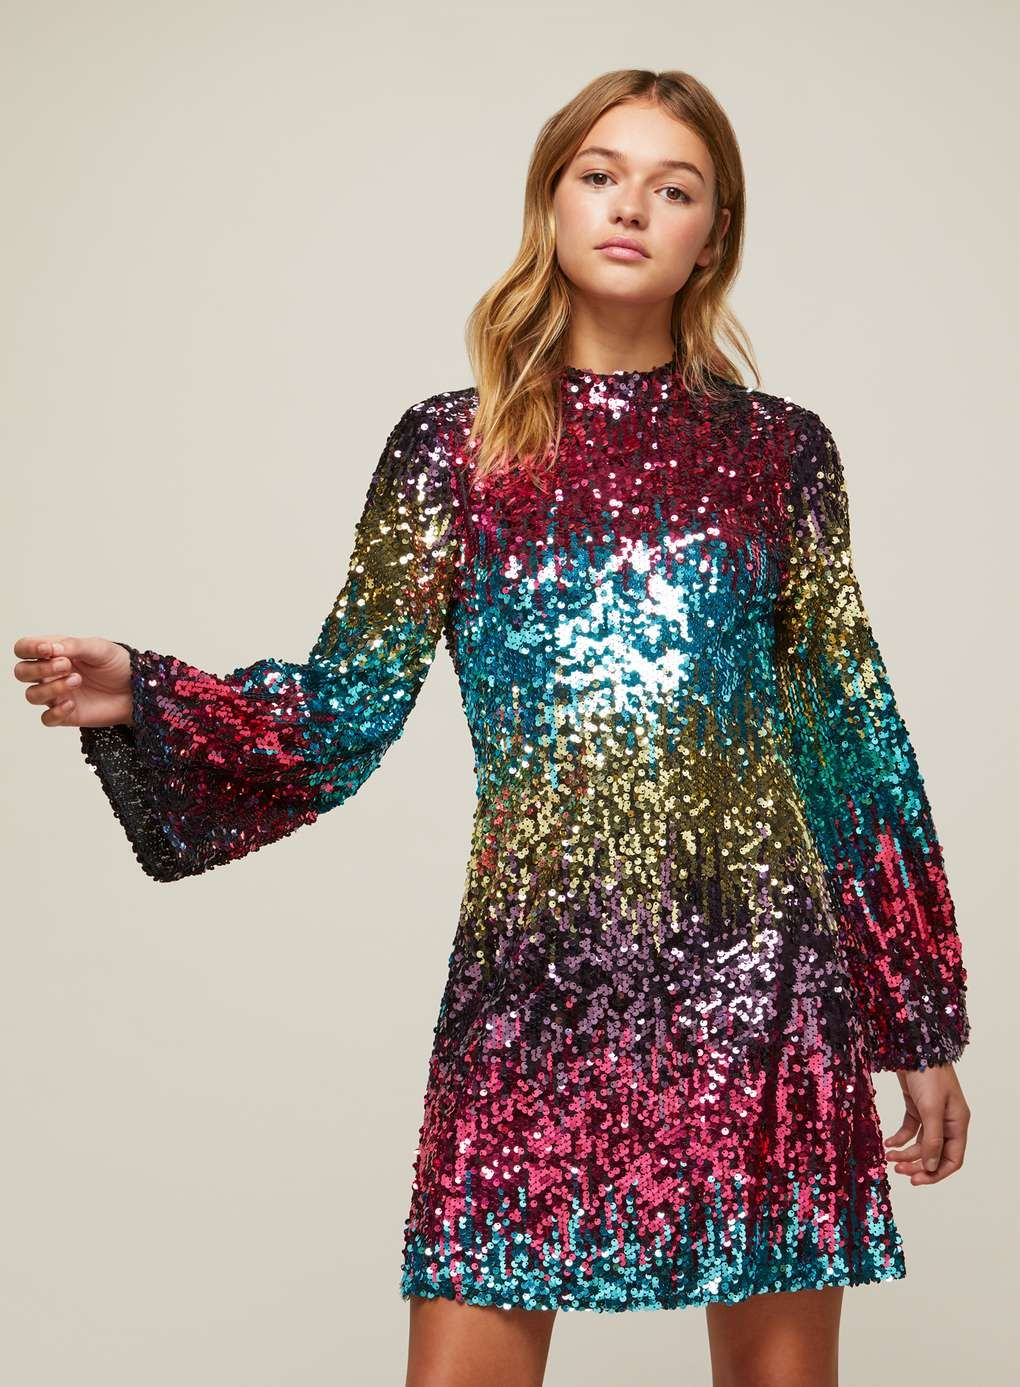 Christmas Party Dresses 2019 Uk.Pin By Miss Selfridge On Glittergirls In 2019 Party